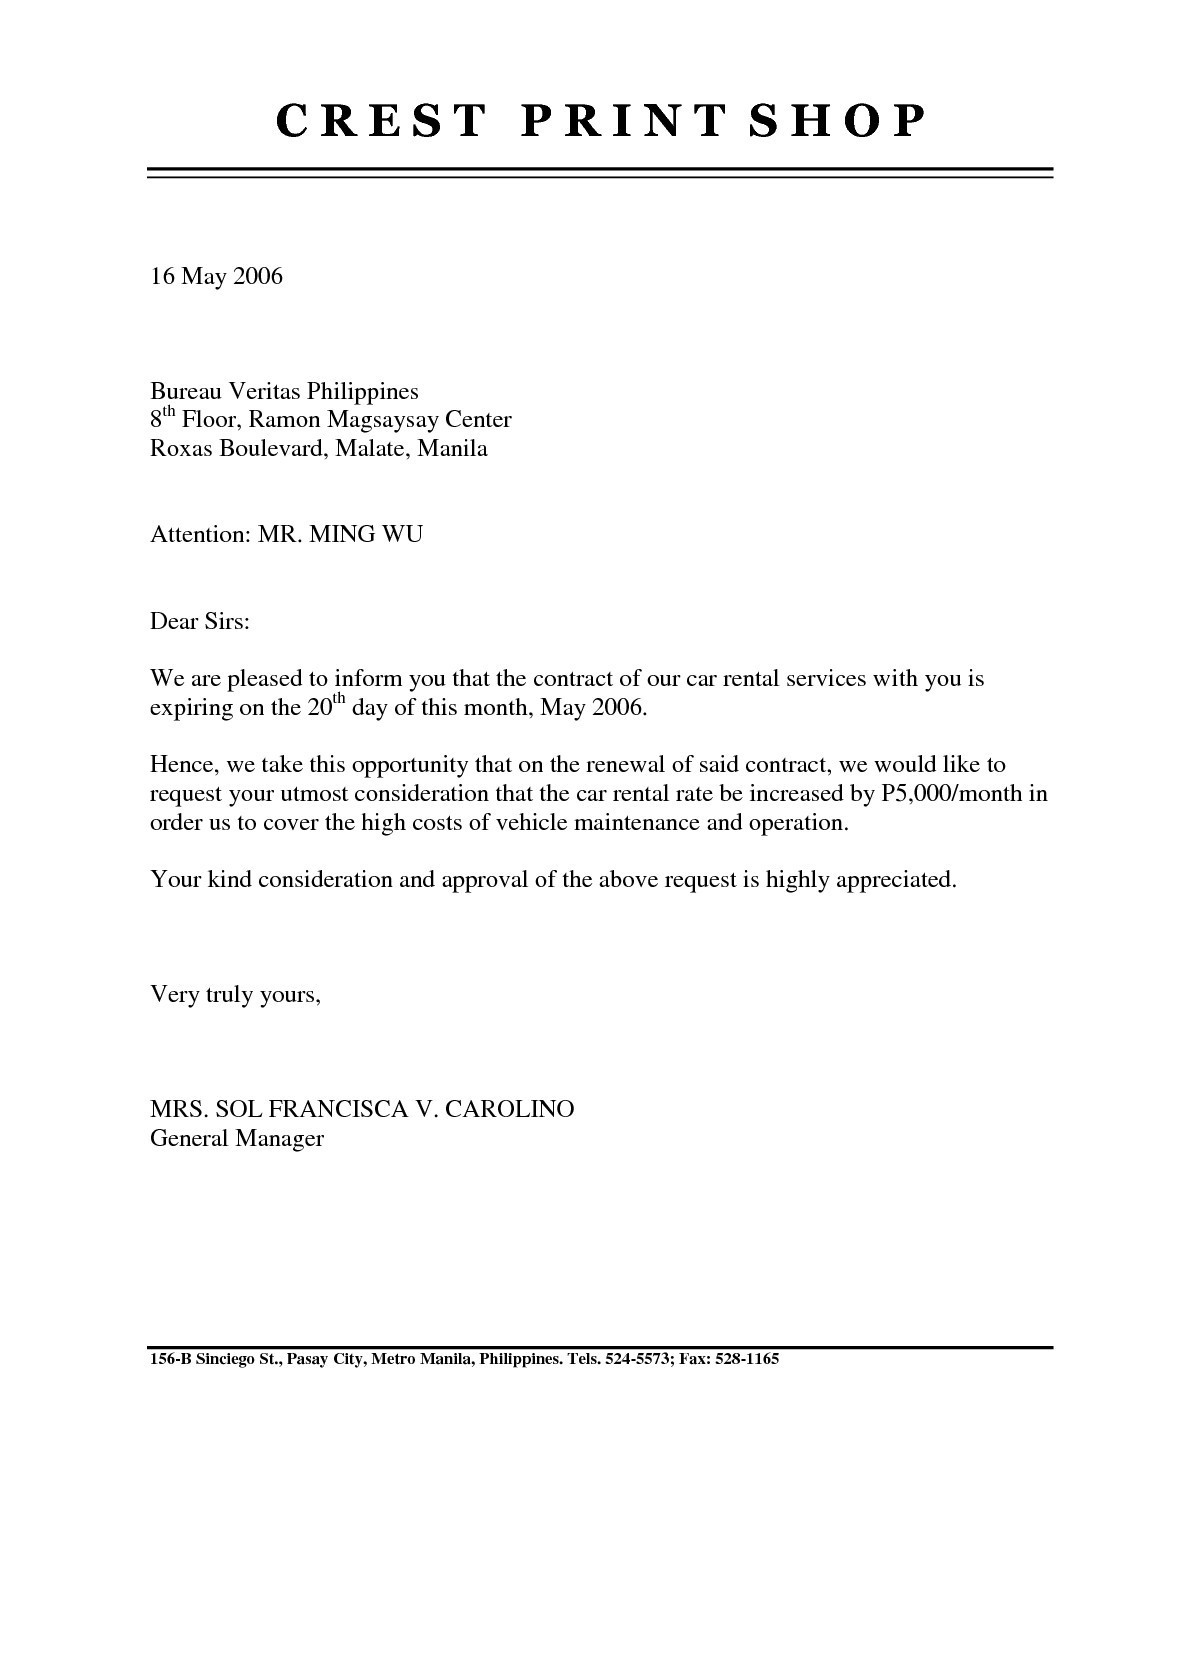 Rental Cover Letter Template - Tenancy Agreement Renewal Template